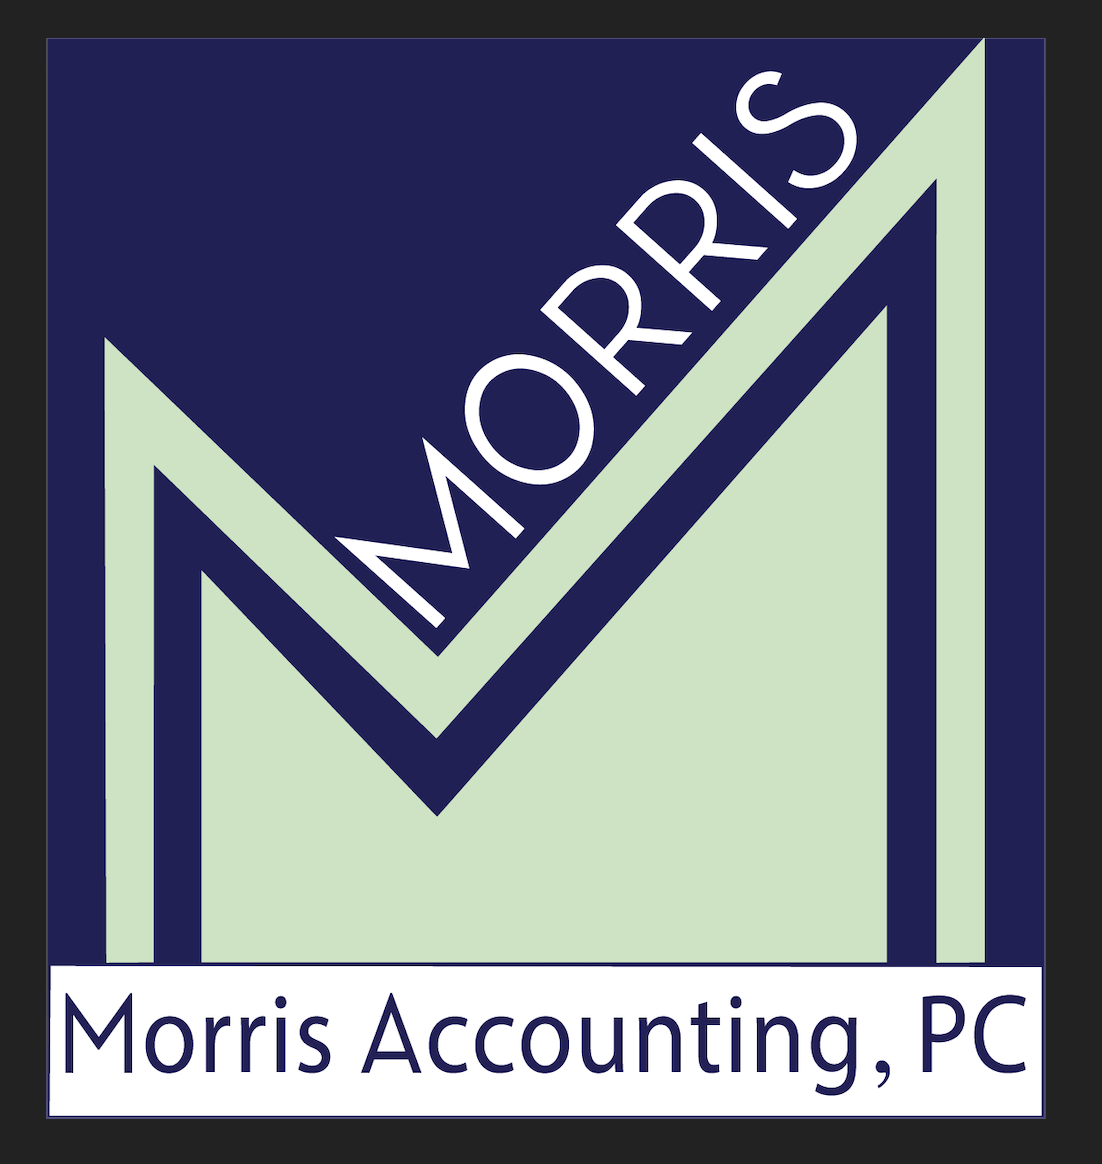 Morris Accounting PC